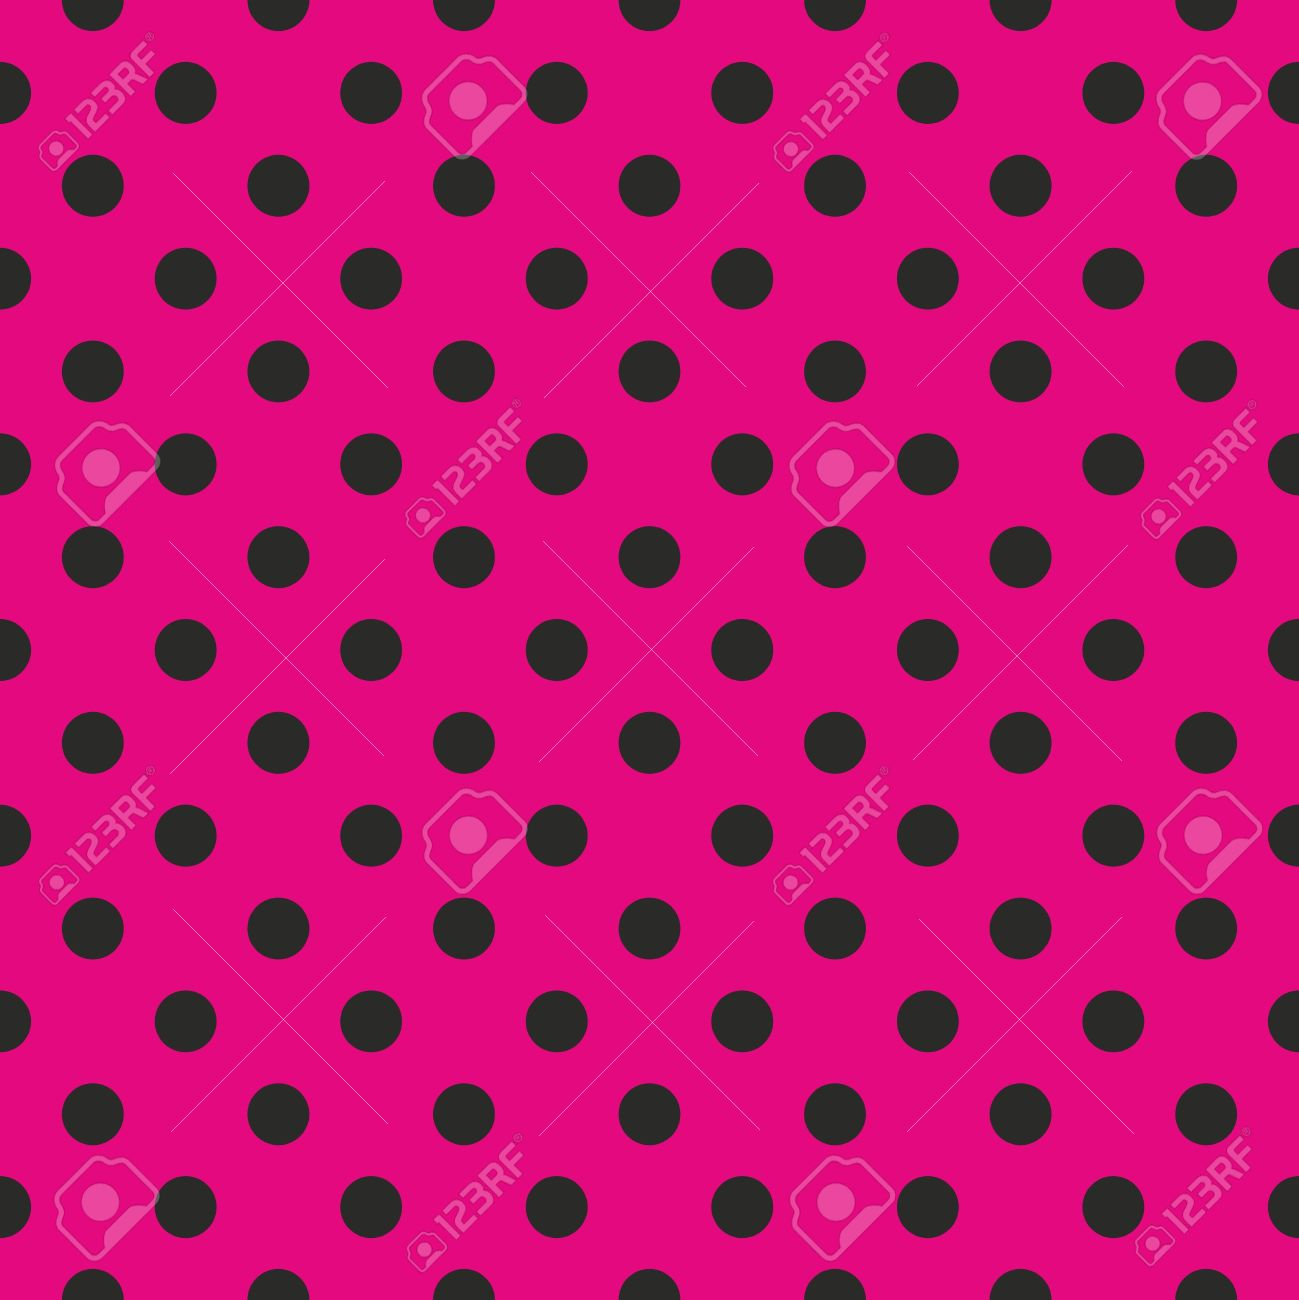 Seamless pop art abstract pattern or texture with neon pink polka dots on black background. For web design, wallpaper, blog, documents template. Stock Vector - 16080844